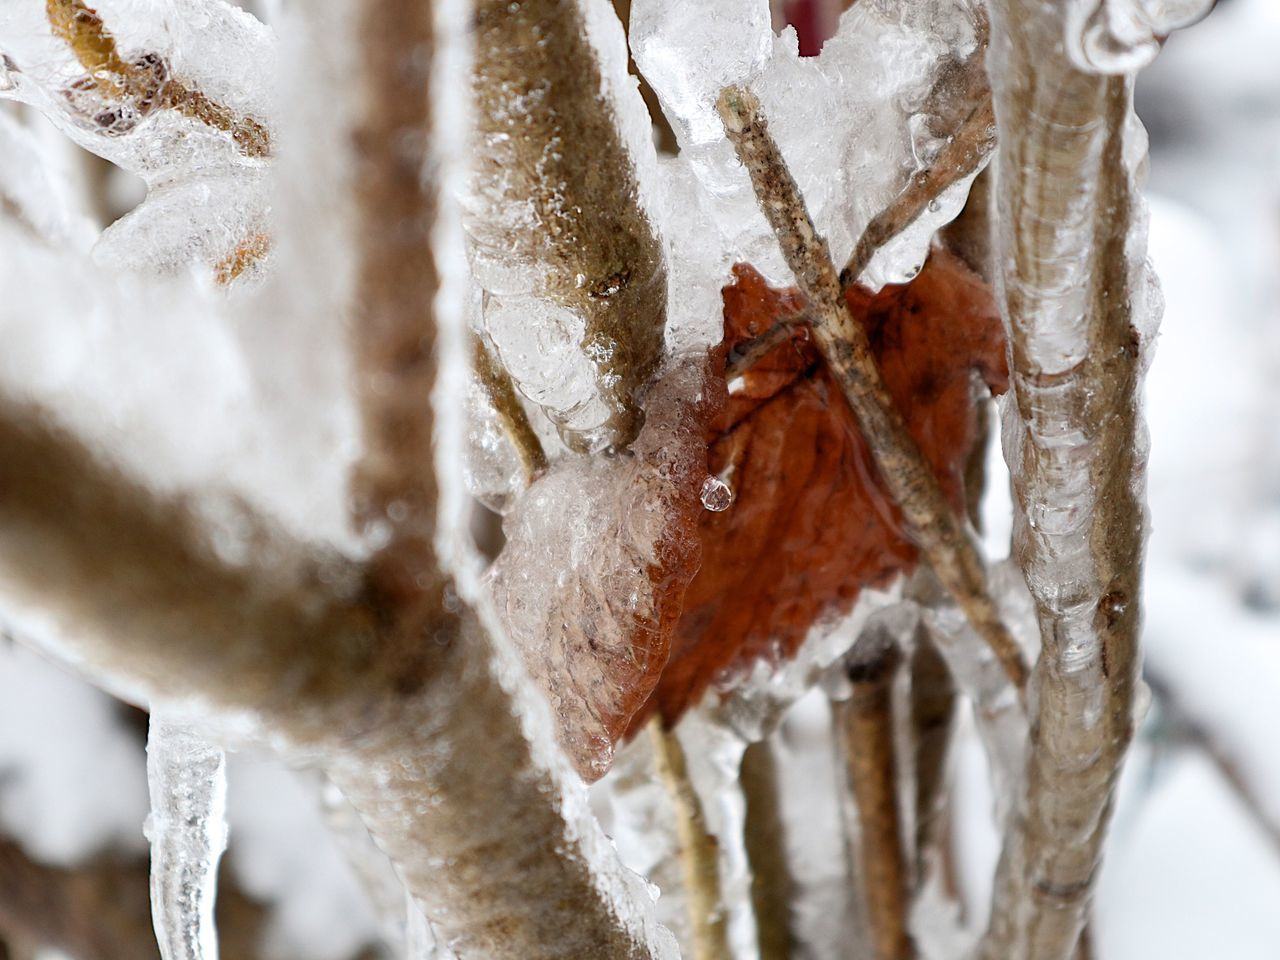 cold temperature, ice, frozen, winter, snow, close-up, no people, weather, icicle, frost, day, outdoors, nature